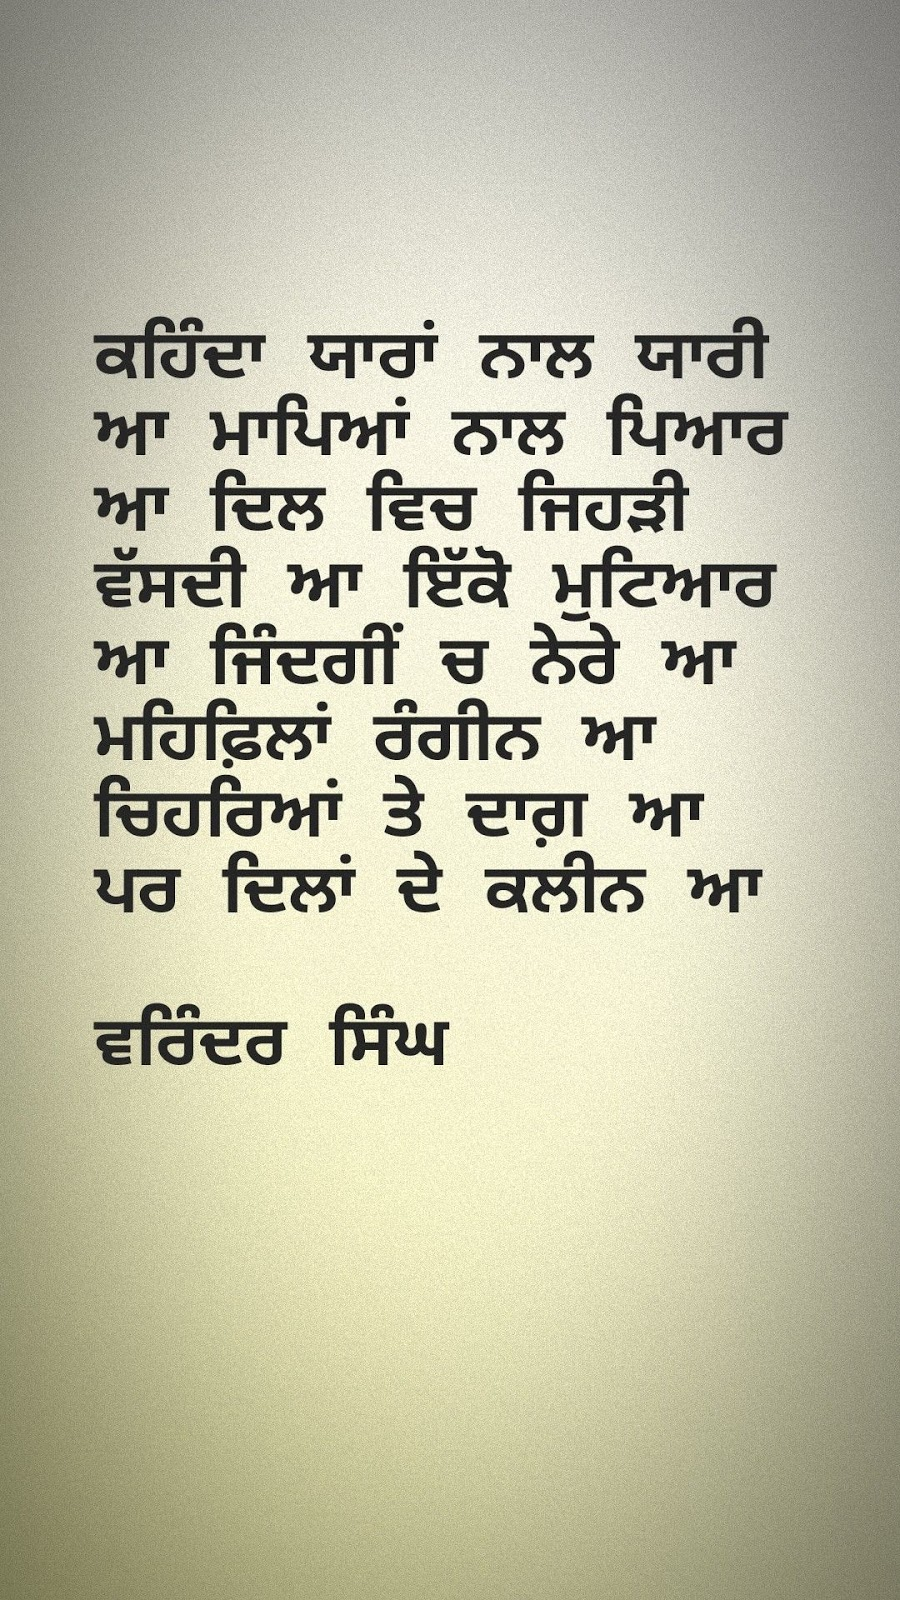 300 Punjabi Attitude Status In Hindi English Font For